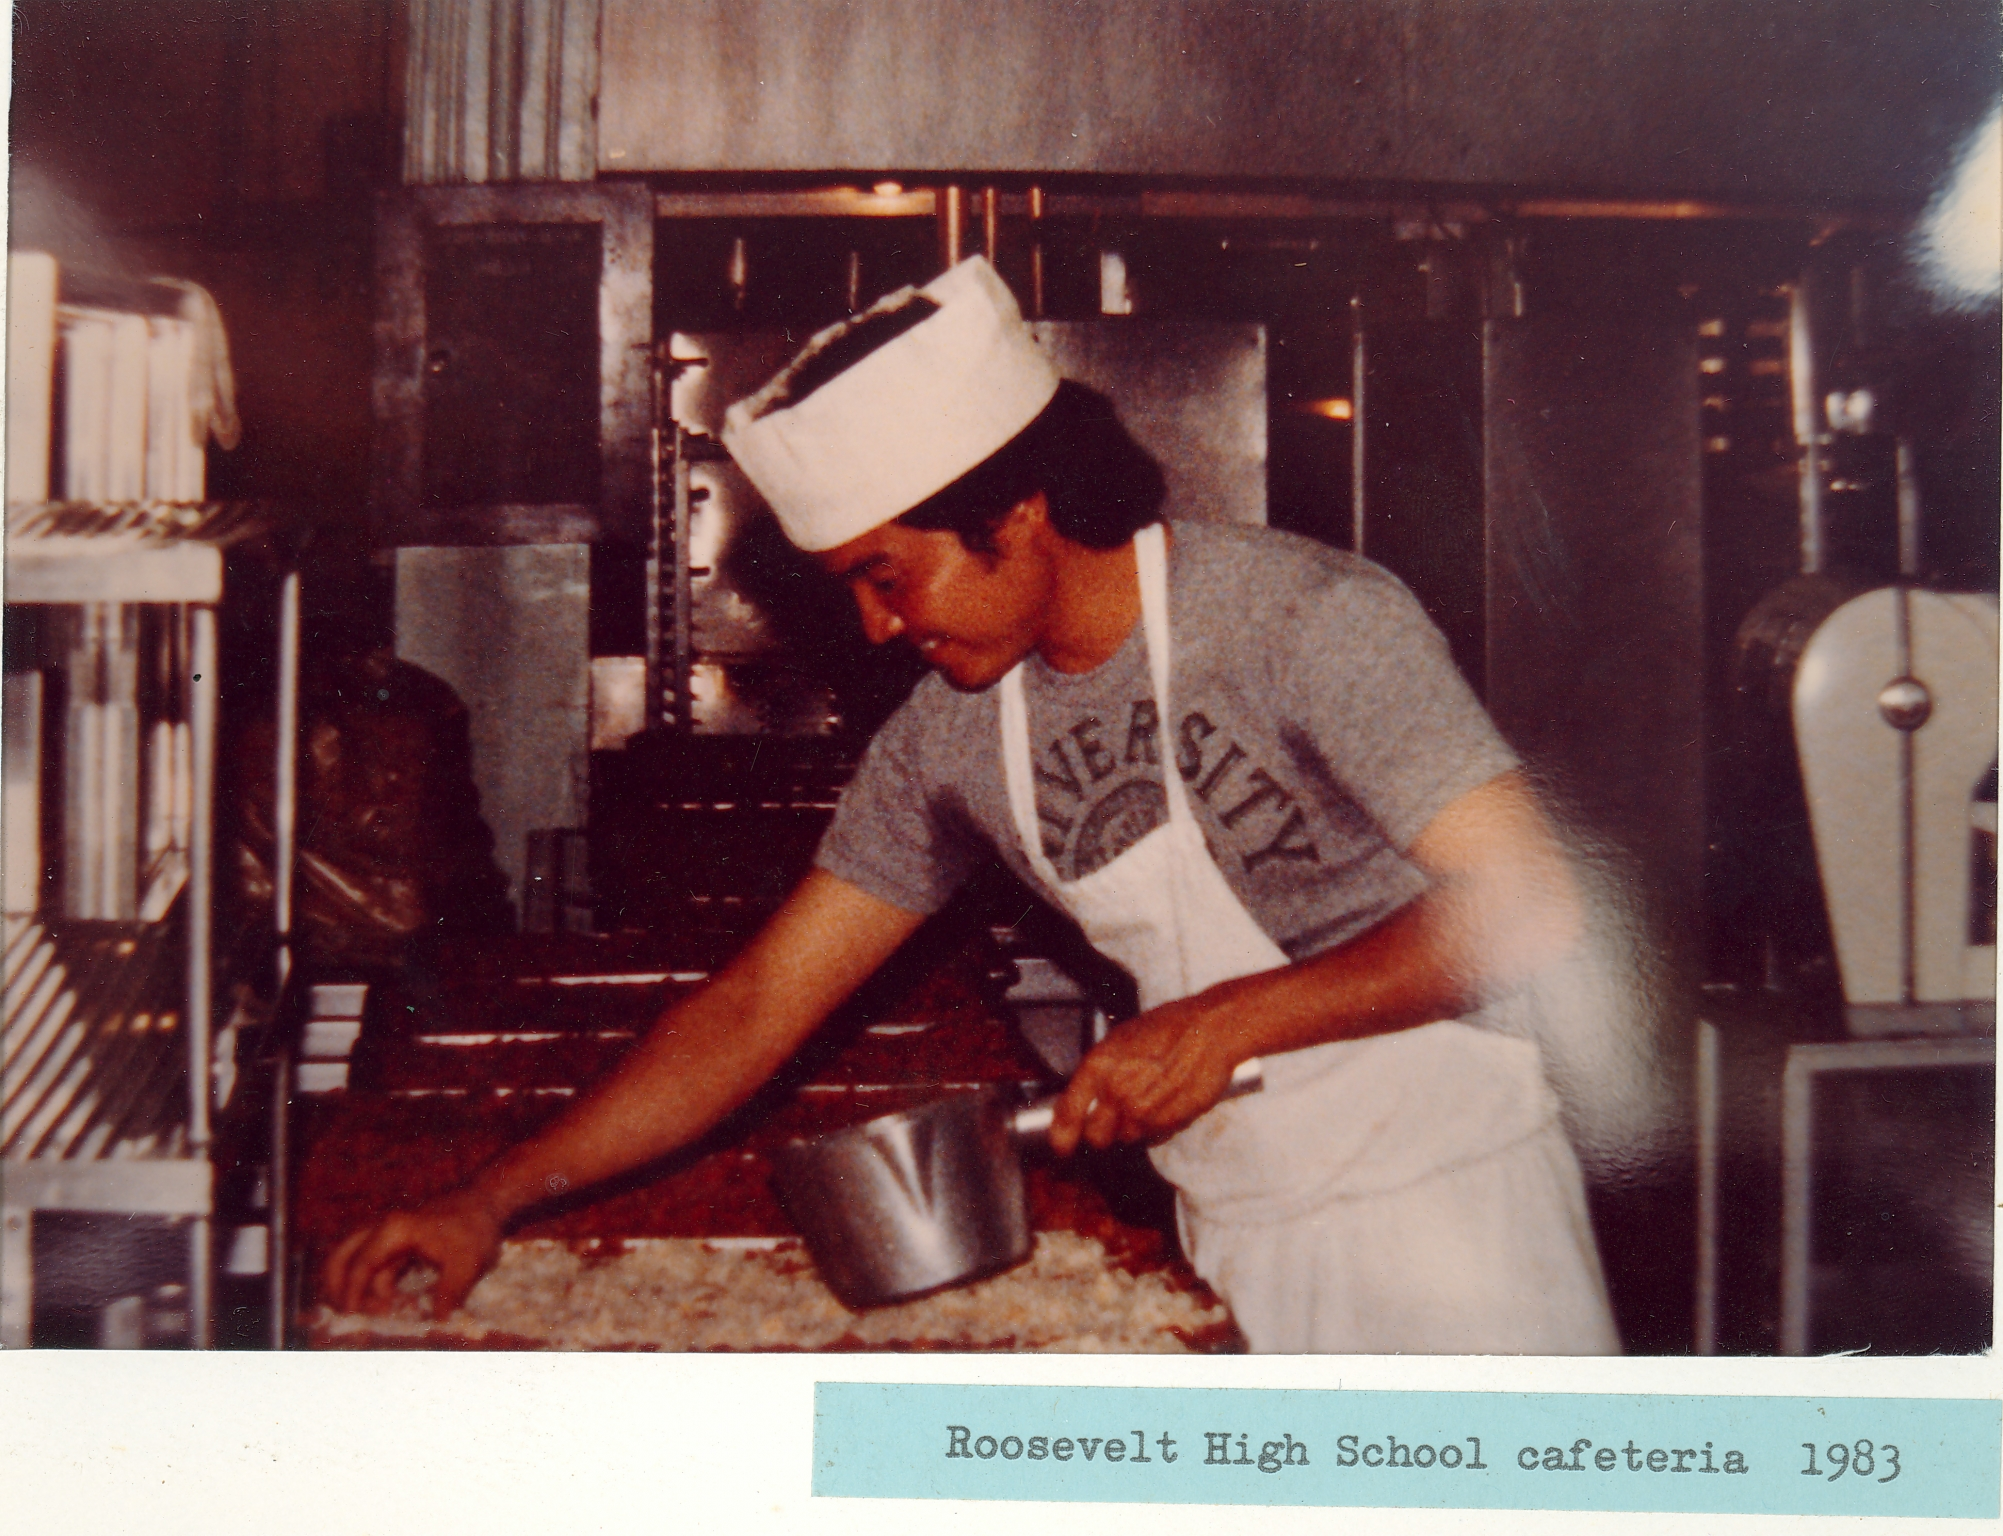 Roosevelt High School 1983 03